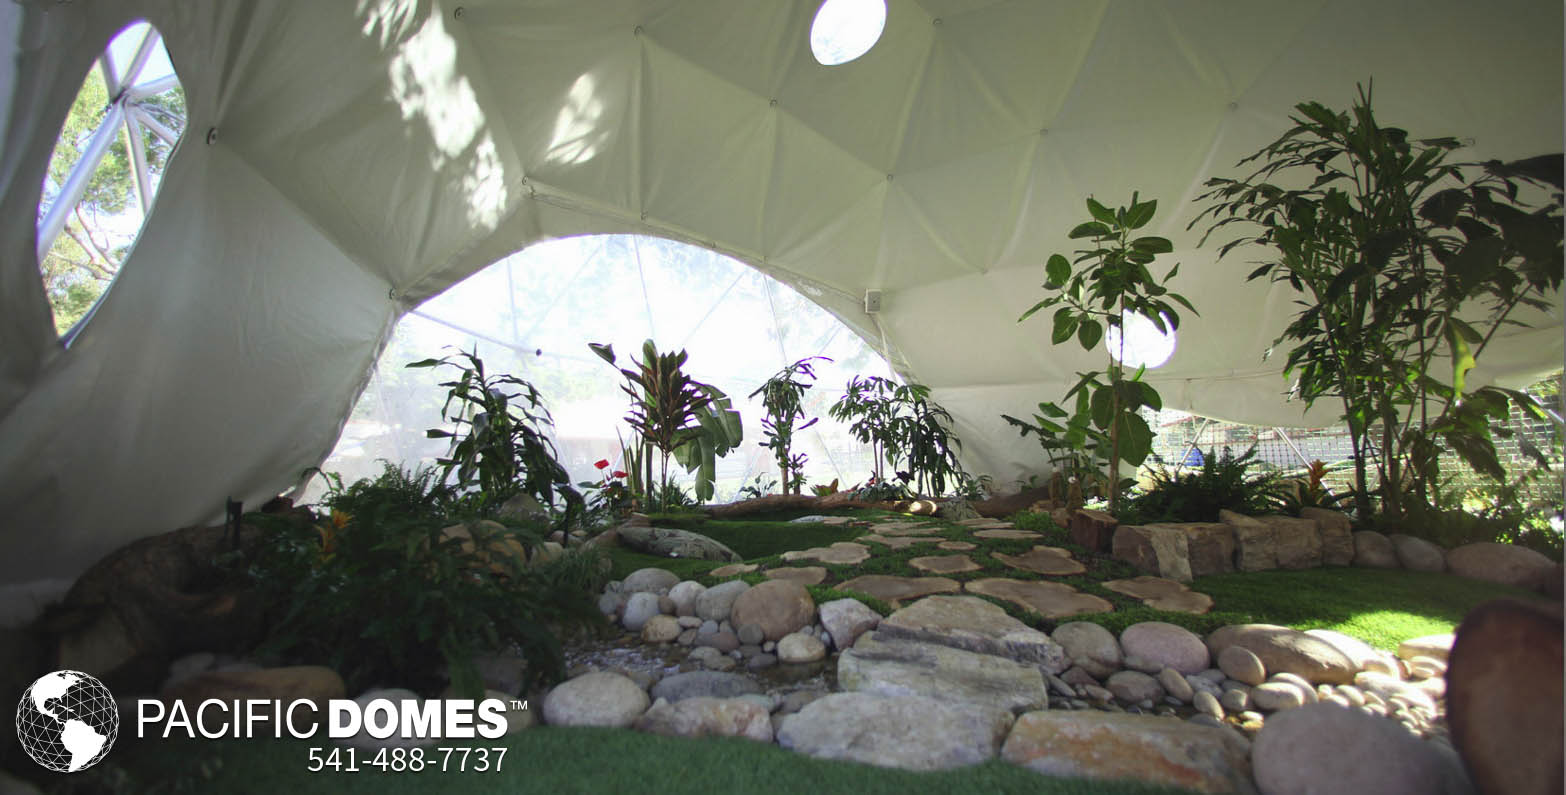 Outdoor GrowDome Classroom - Pacific Domes